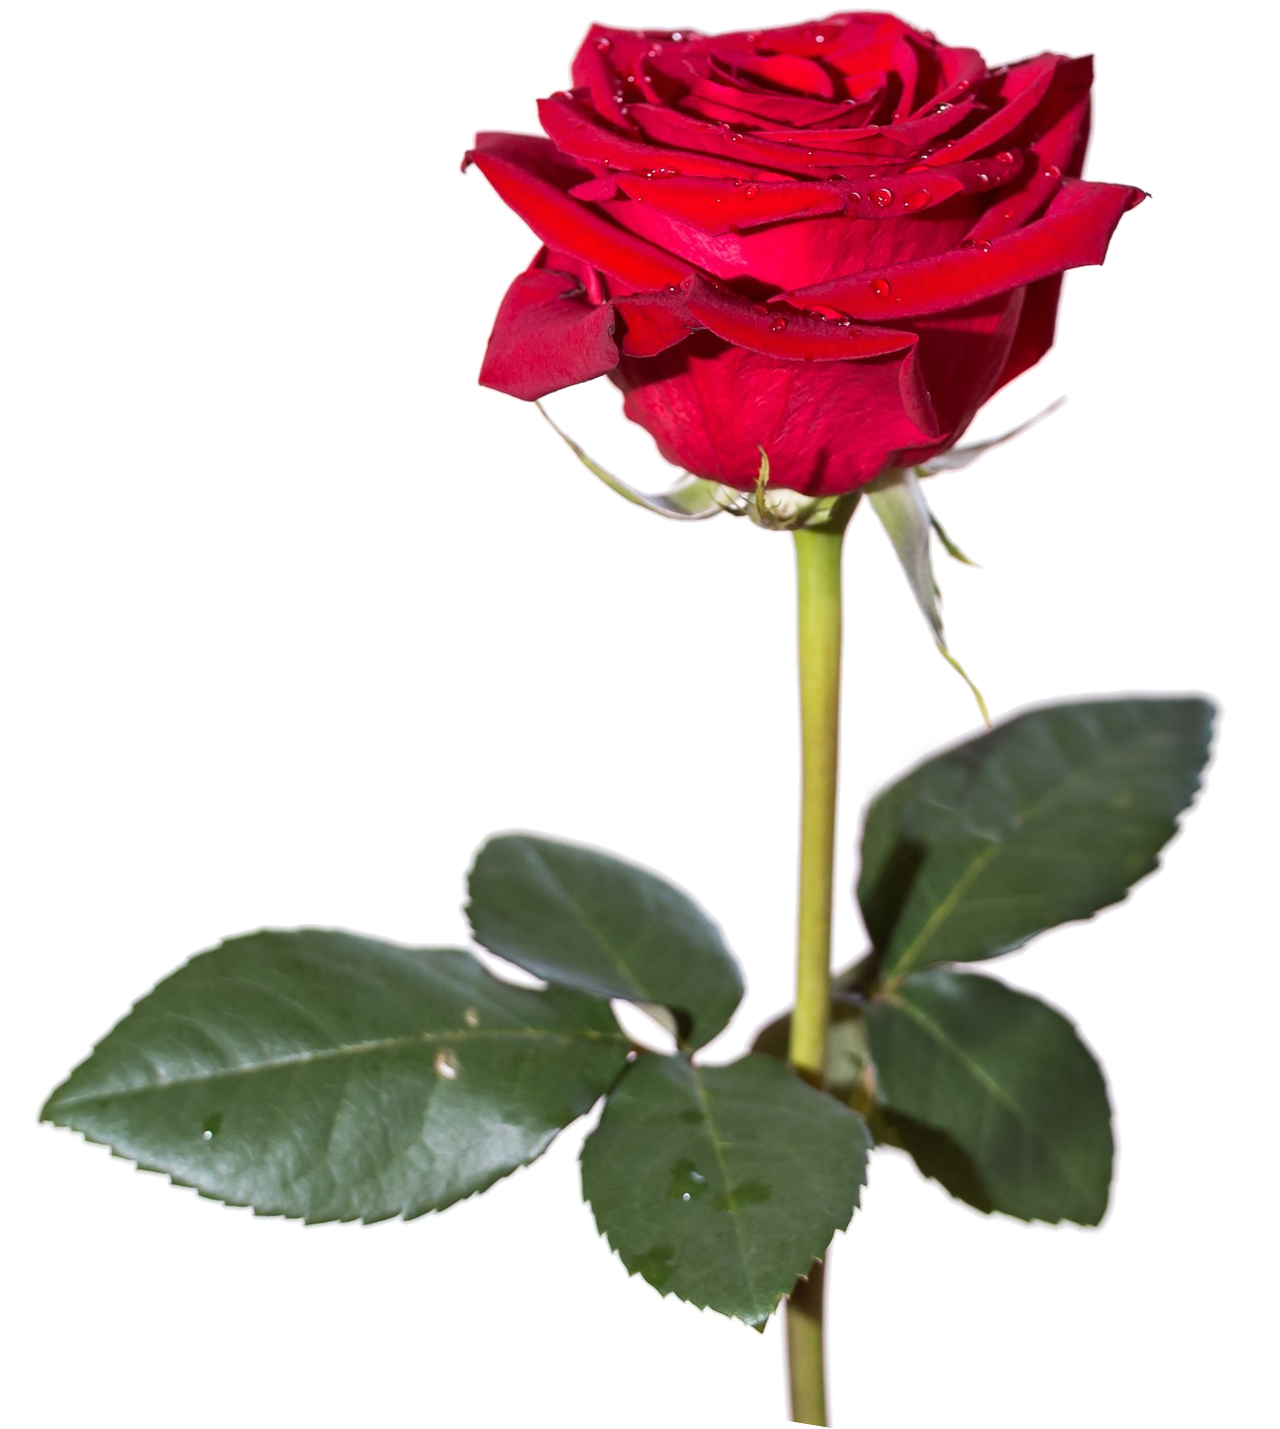 Rose PNG HD